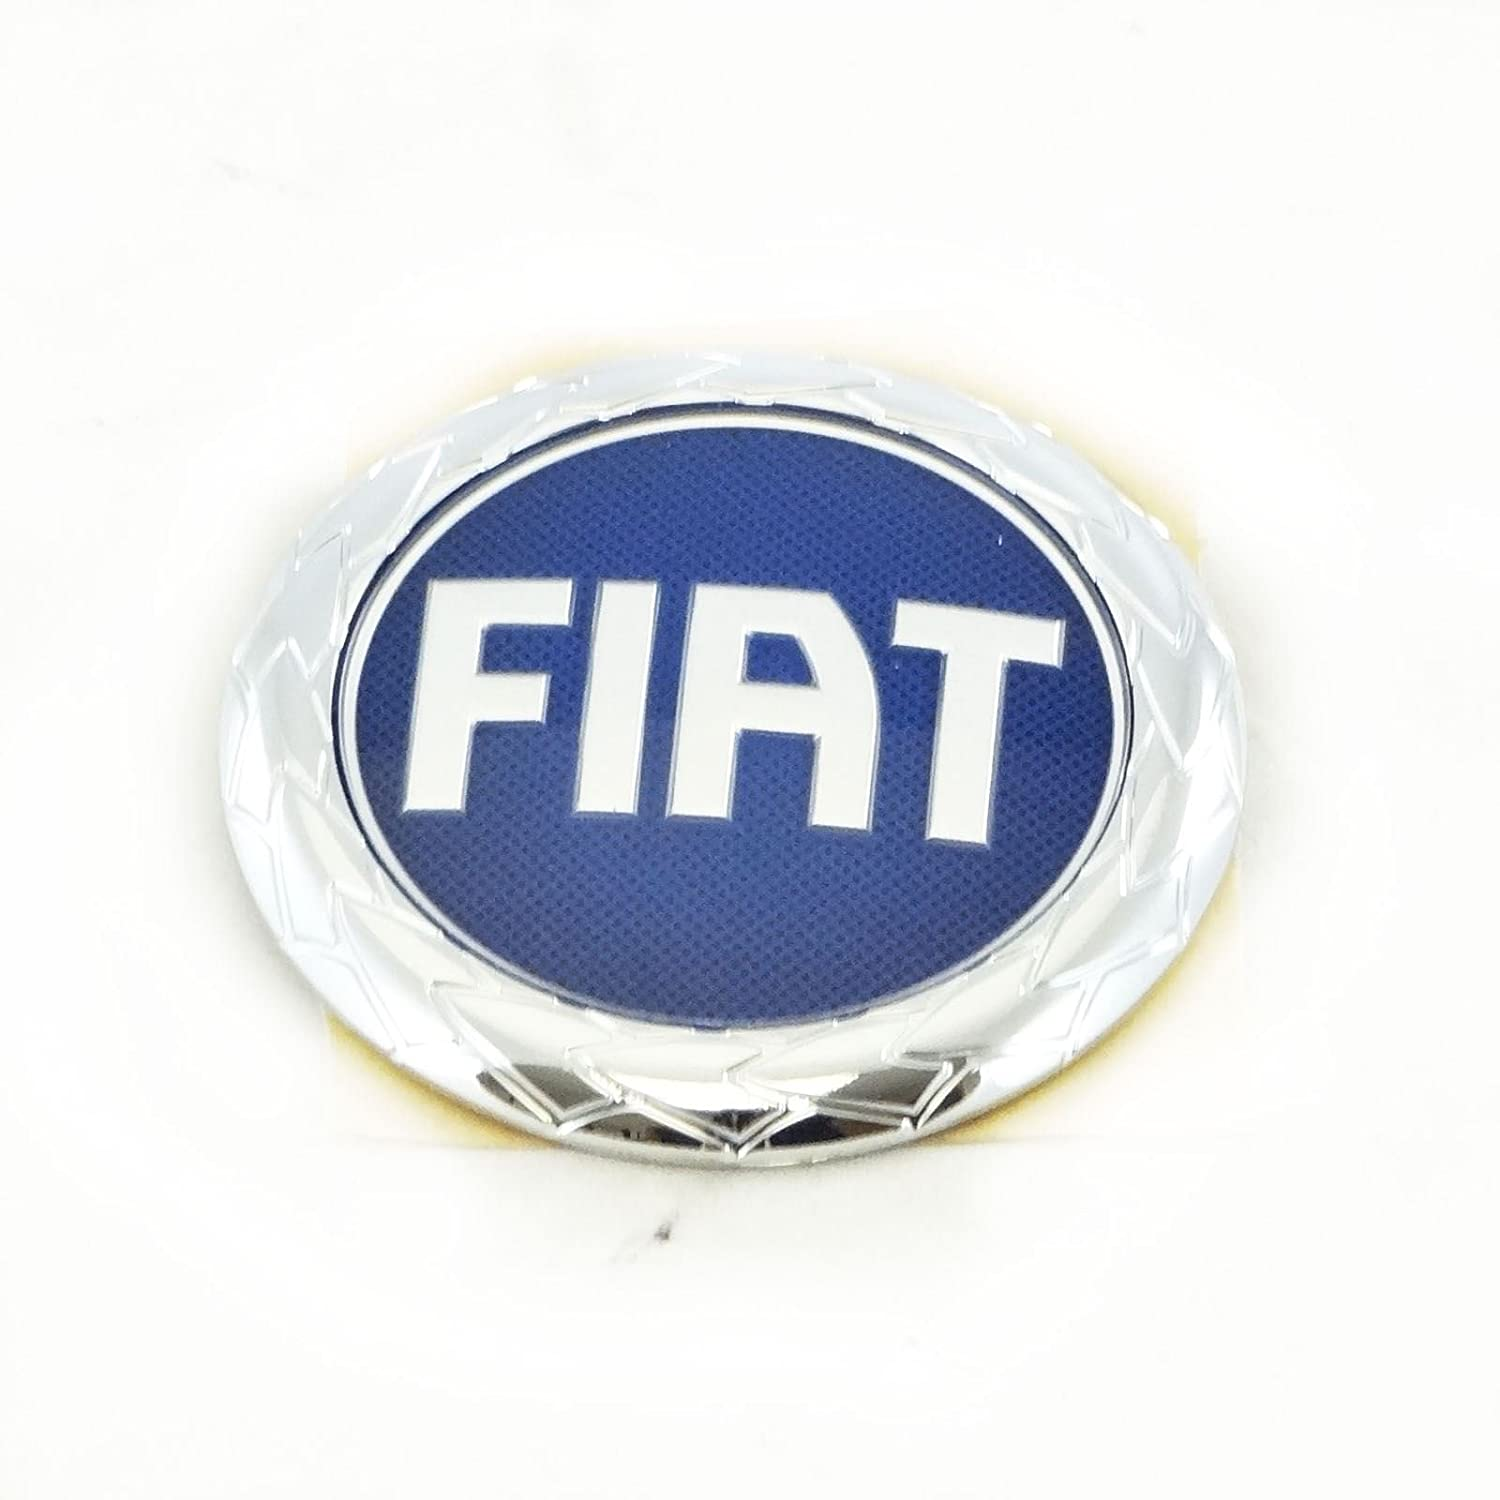 Genuine Fiat Panda 03-09 Grande Punto 05-08 Doblo Idea Barchetta Medallion Badge